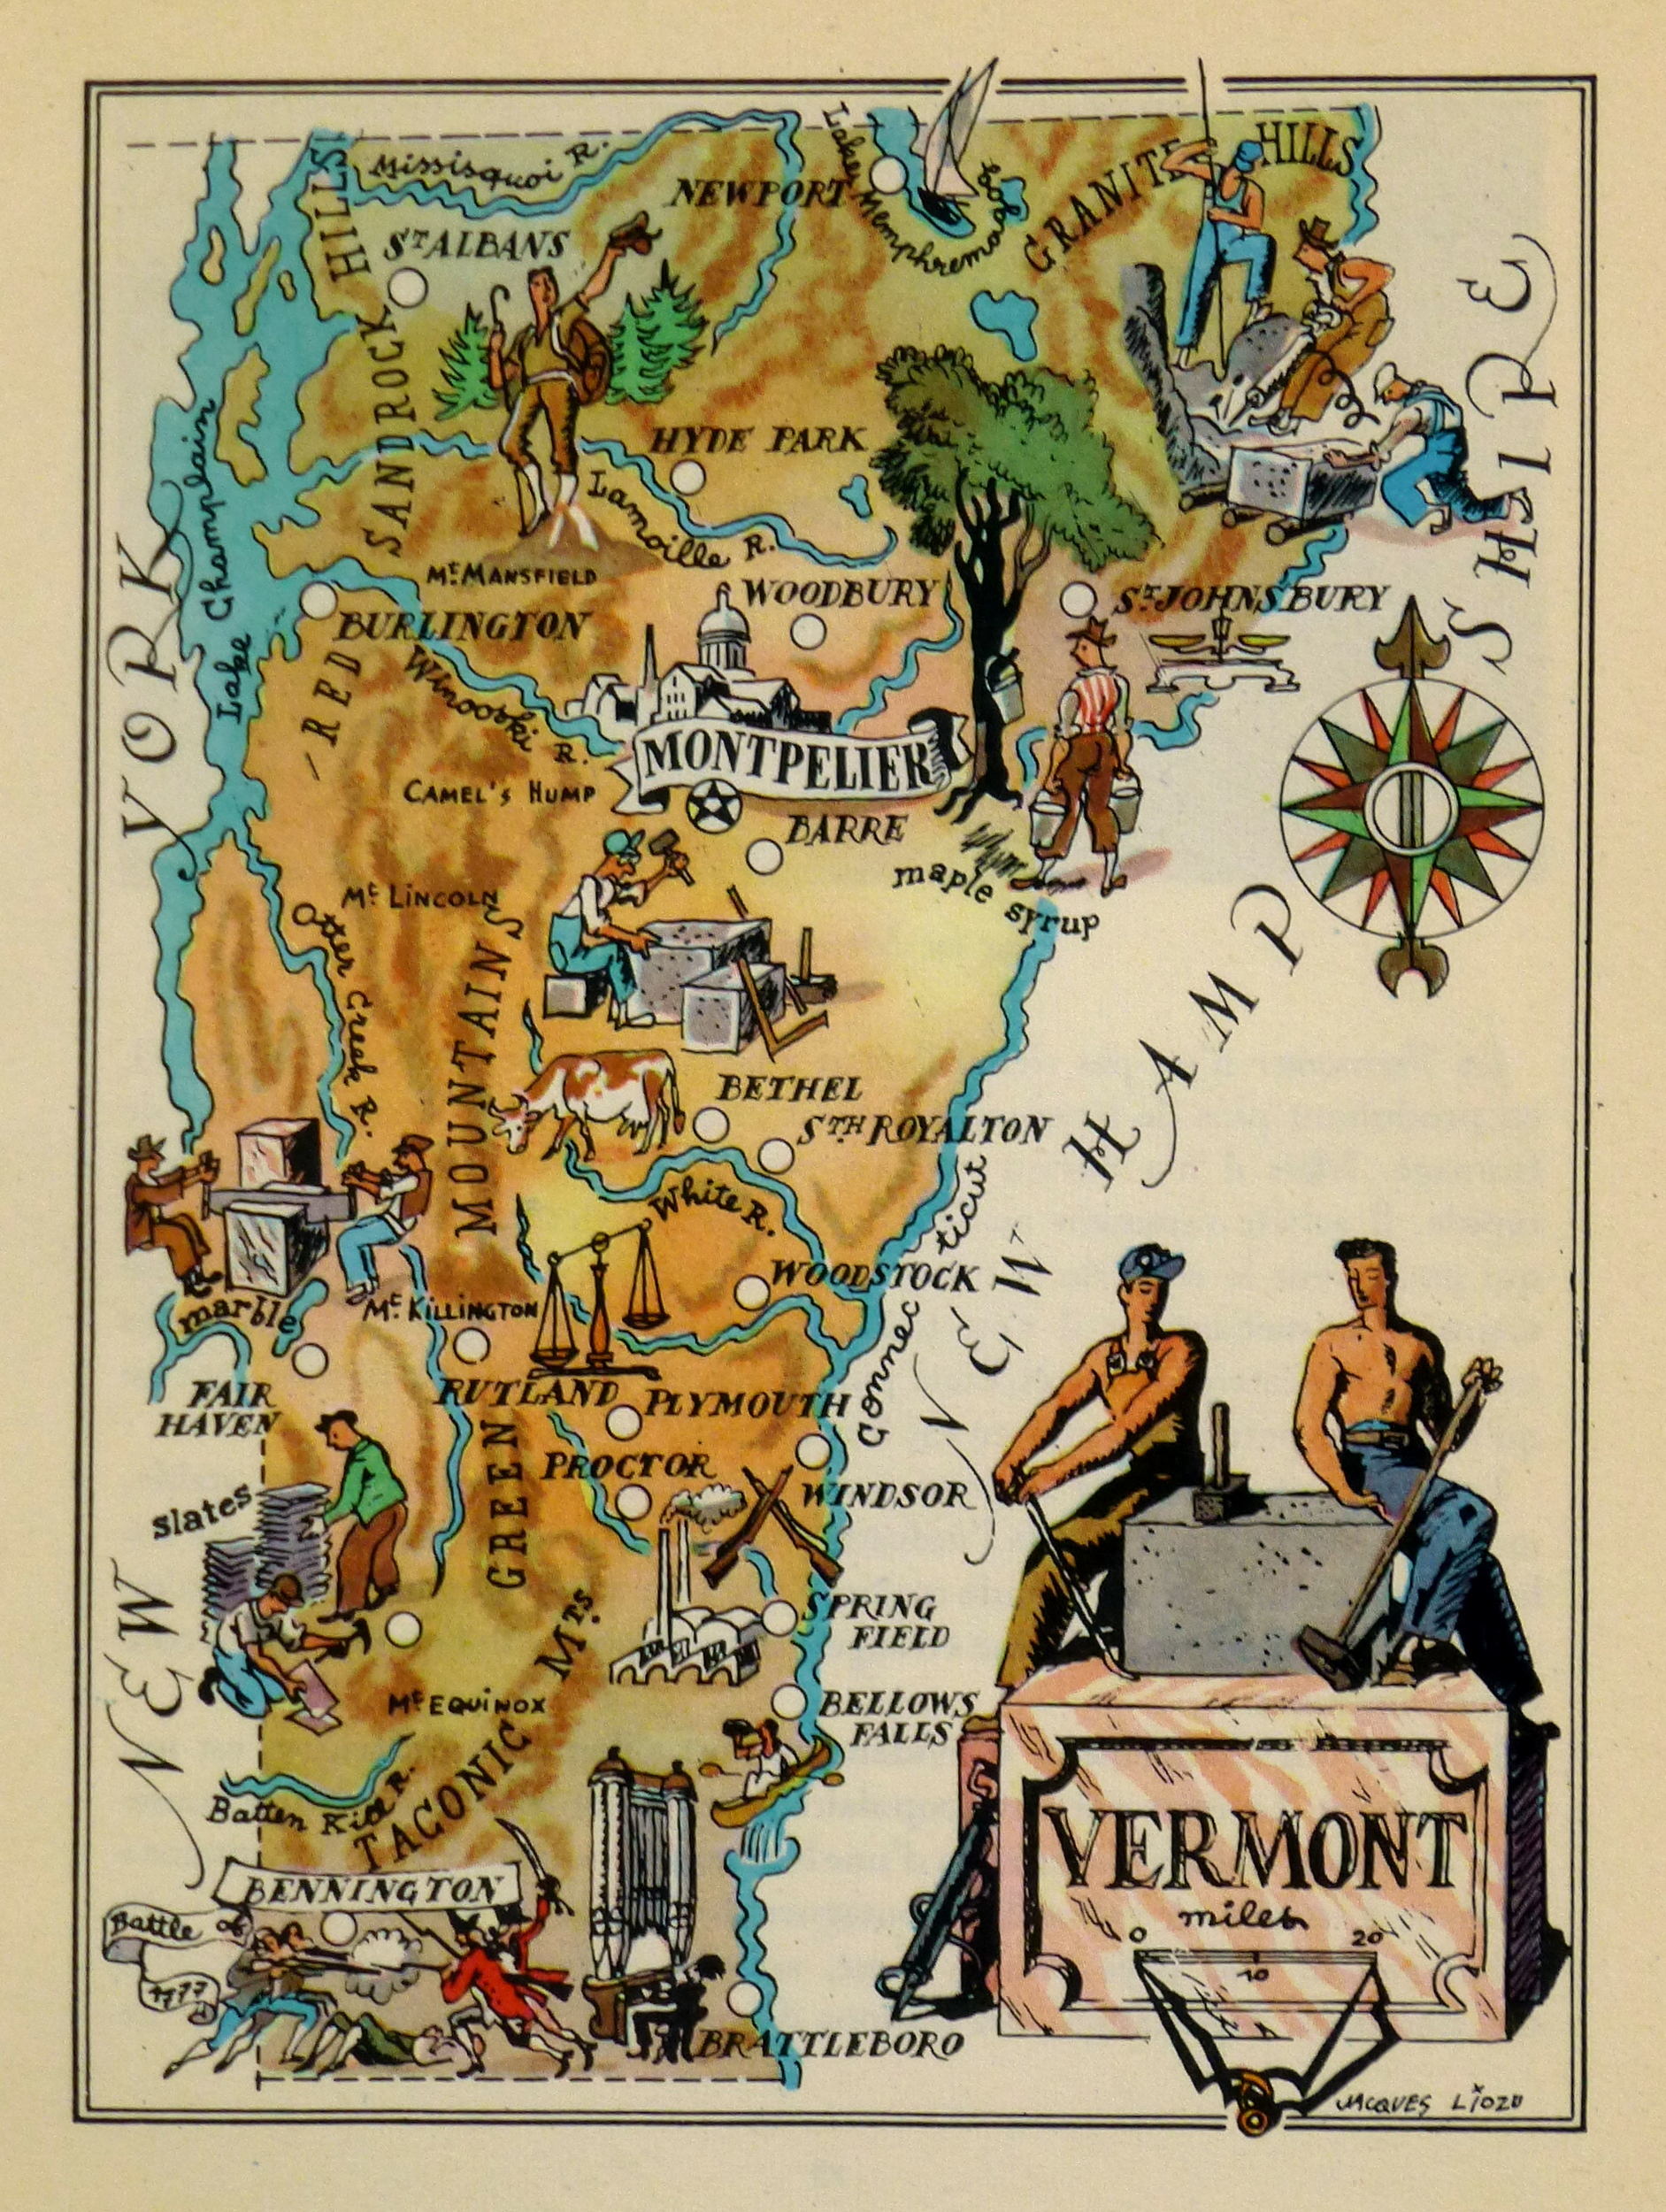 Vermont Pictorial Map, 1946-main-6232K